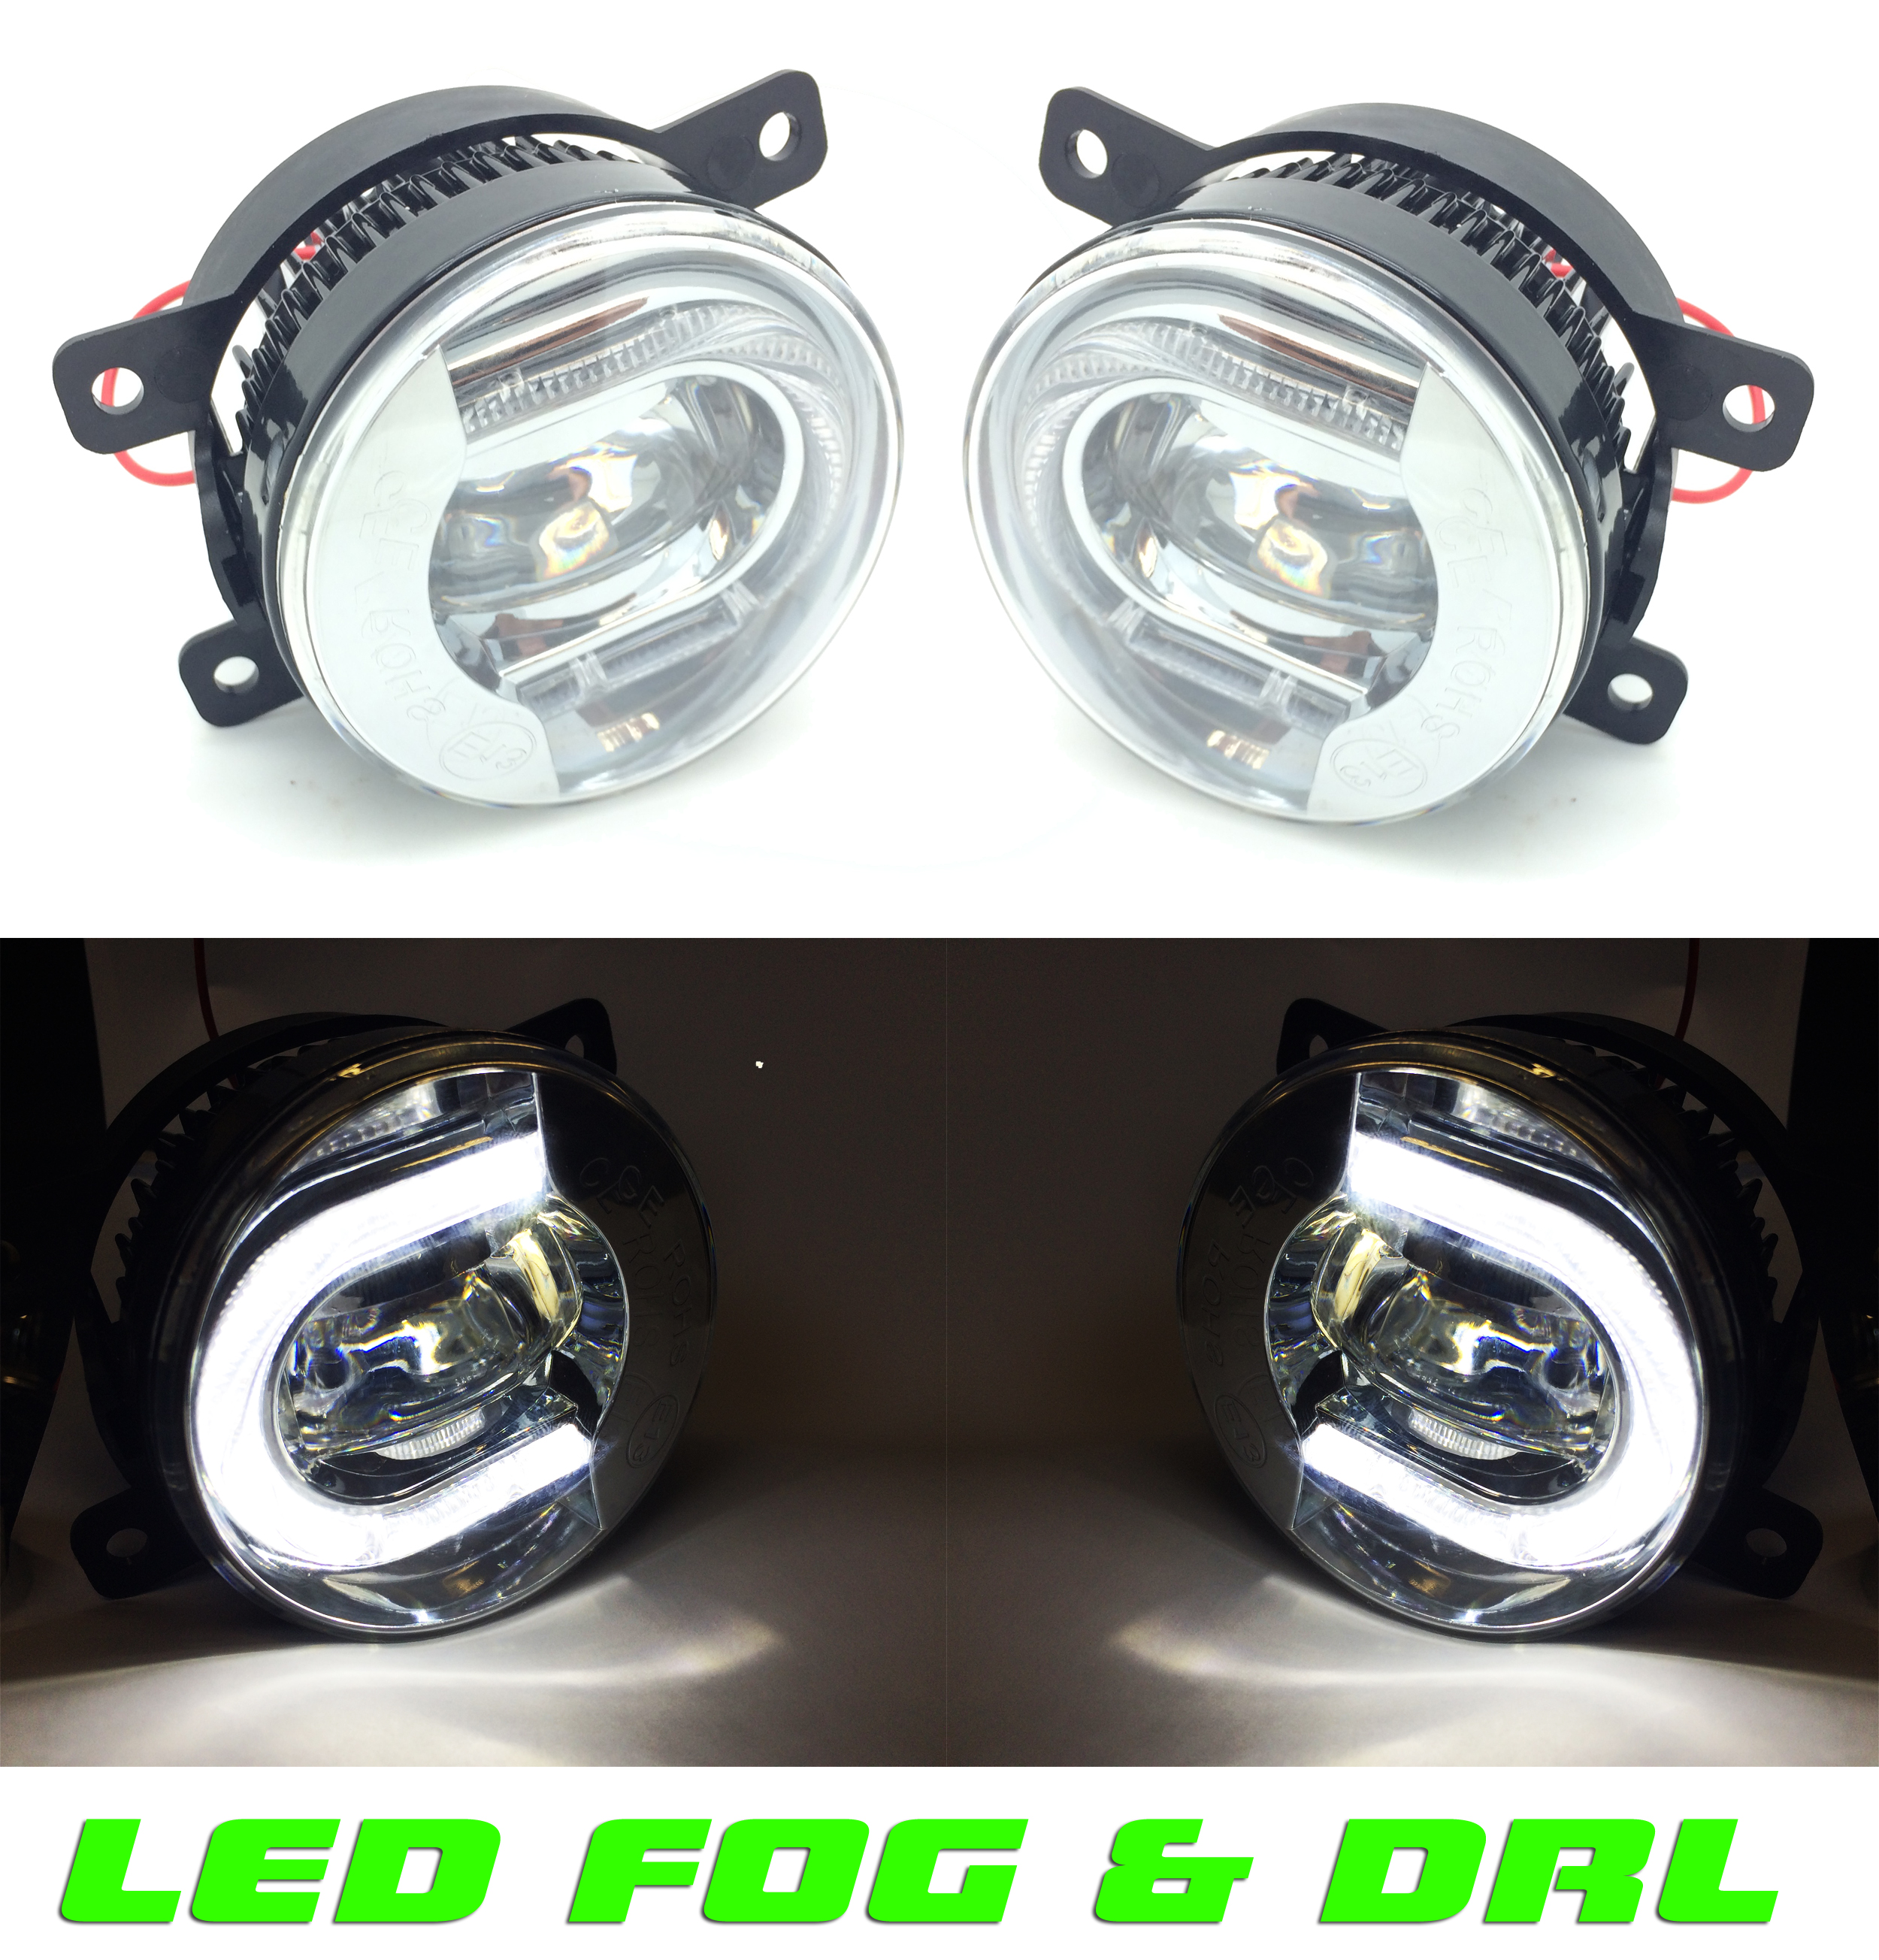 item product nighteye white lamp car specifics high driving bulbs awesomeamazinggreat great light drl power fog led